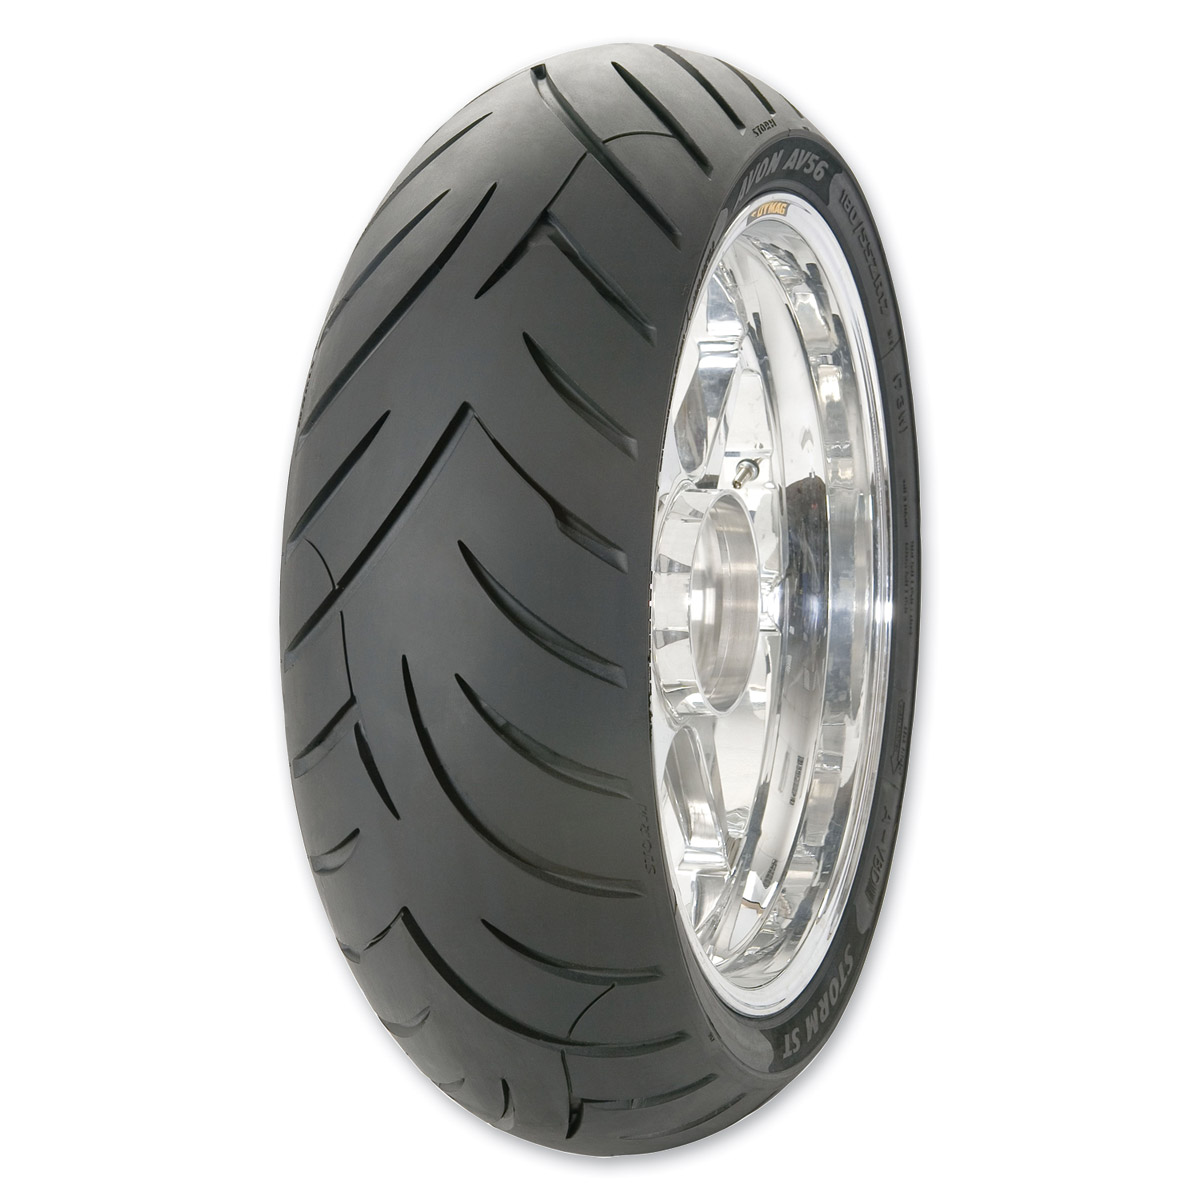 Avon Storm 2 Ultra Sport 200/50R17 Rear Tire